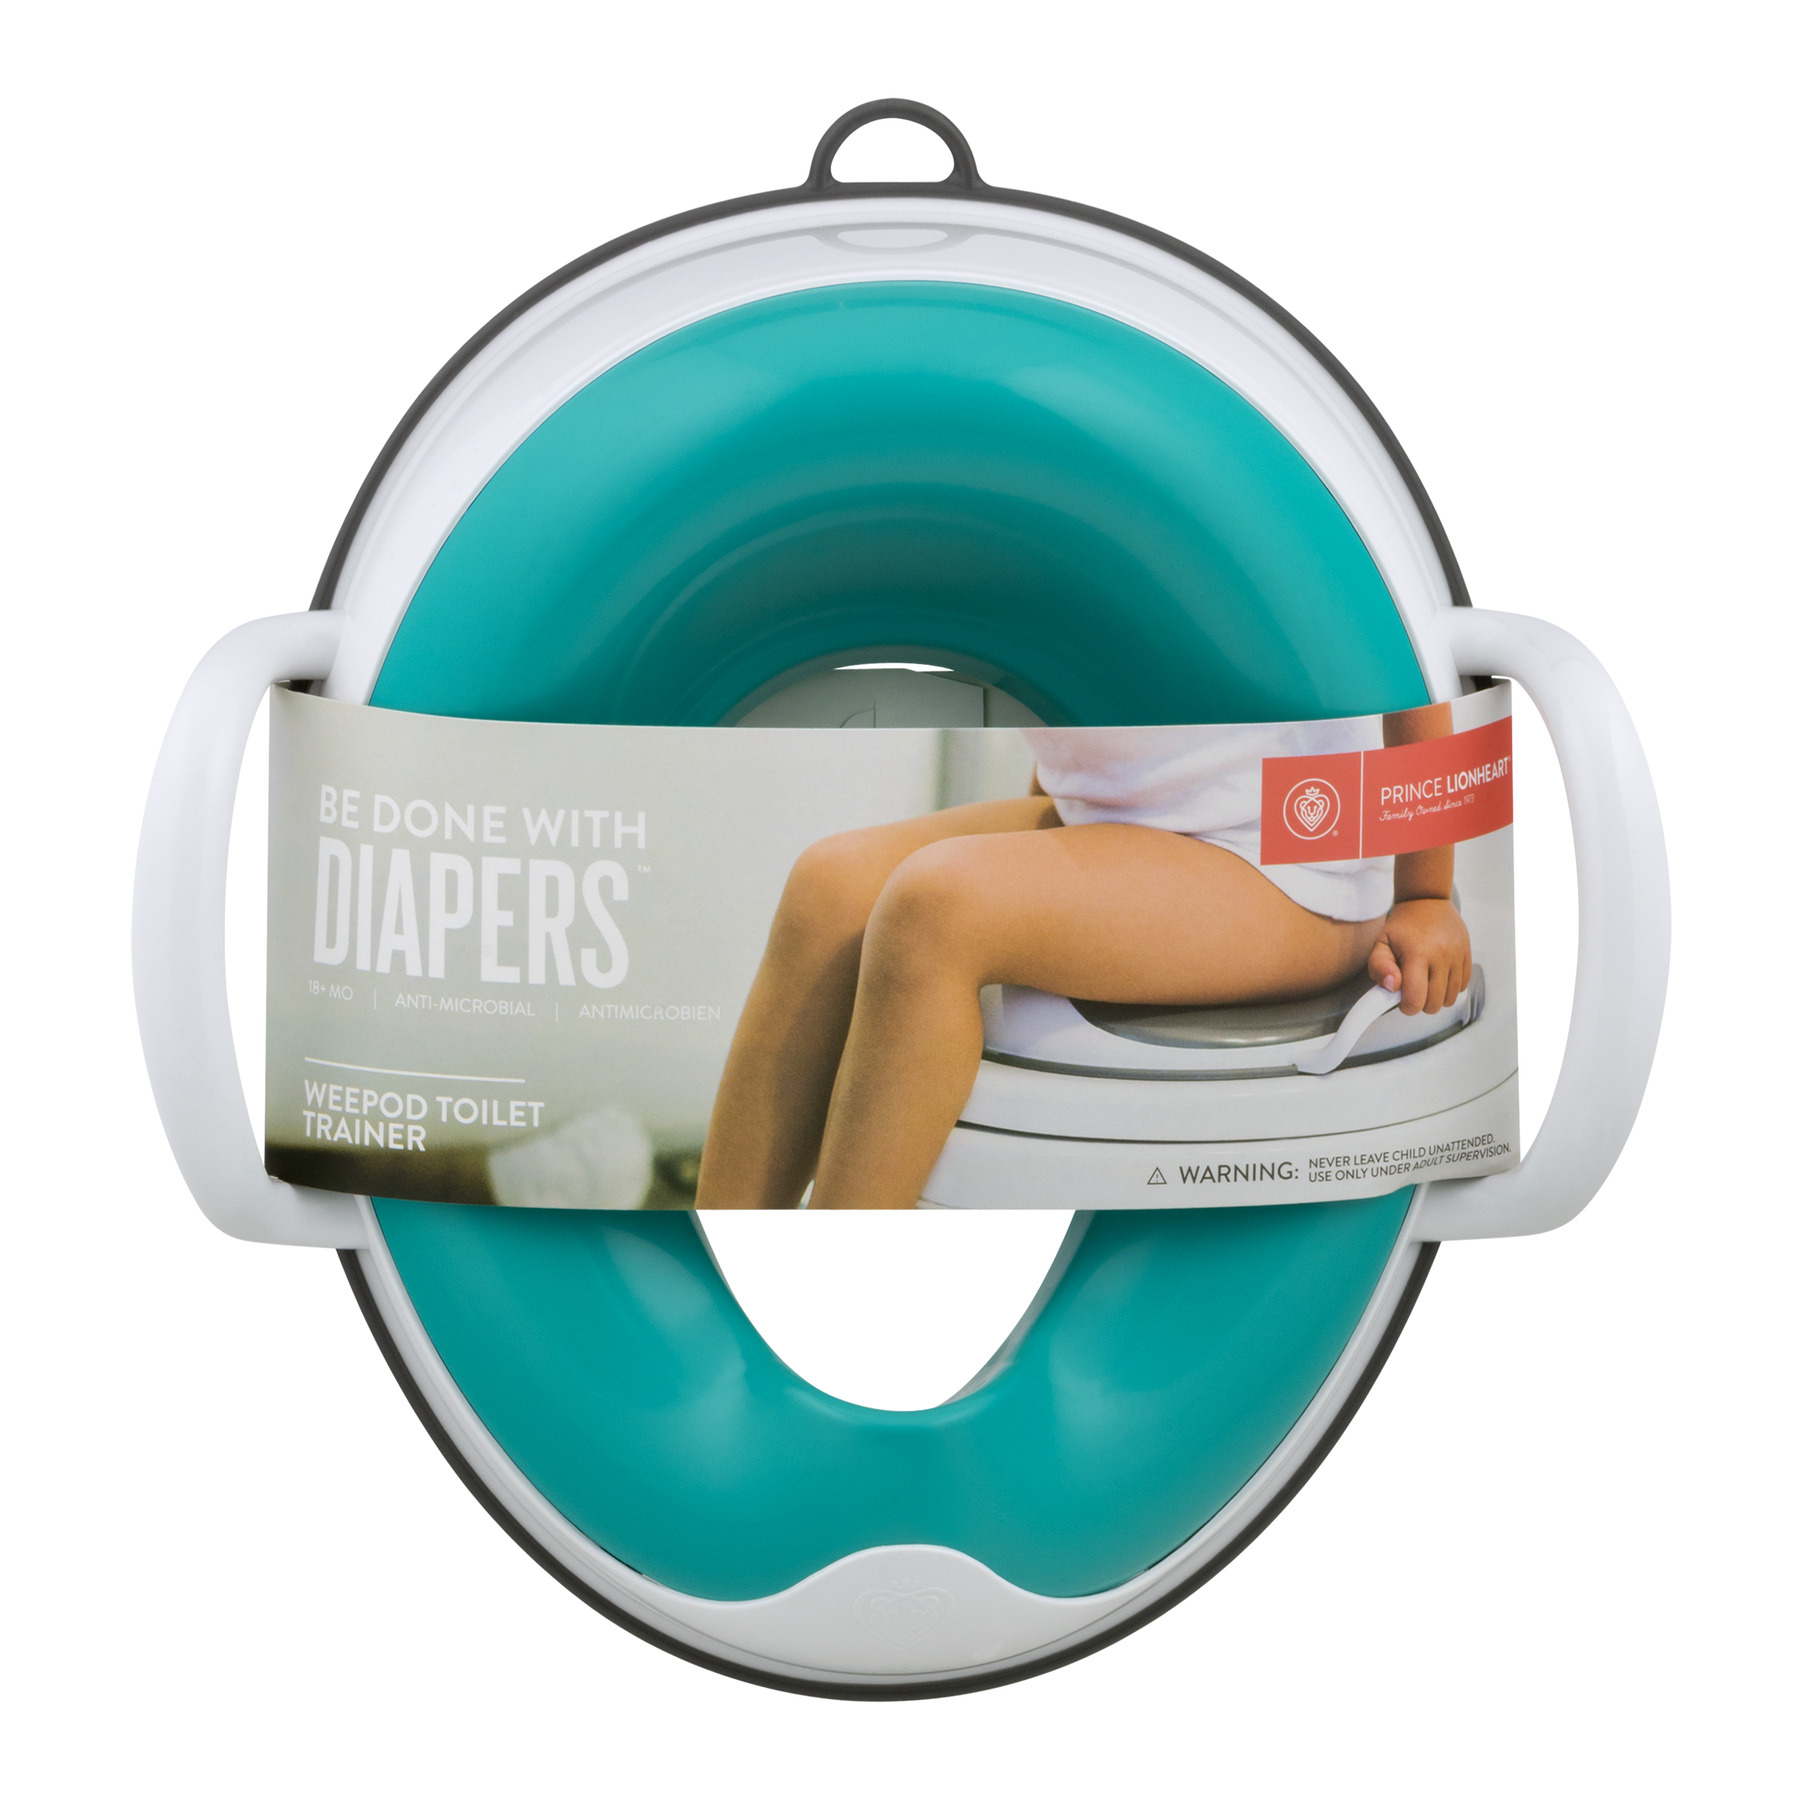 Prince Lionheart Be Done with Diapers Weepod Toilet Trainer, 1.0 CT